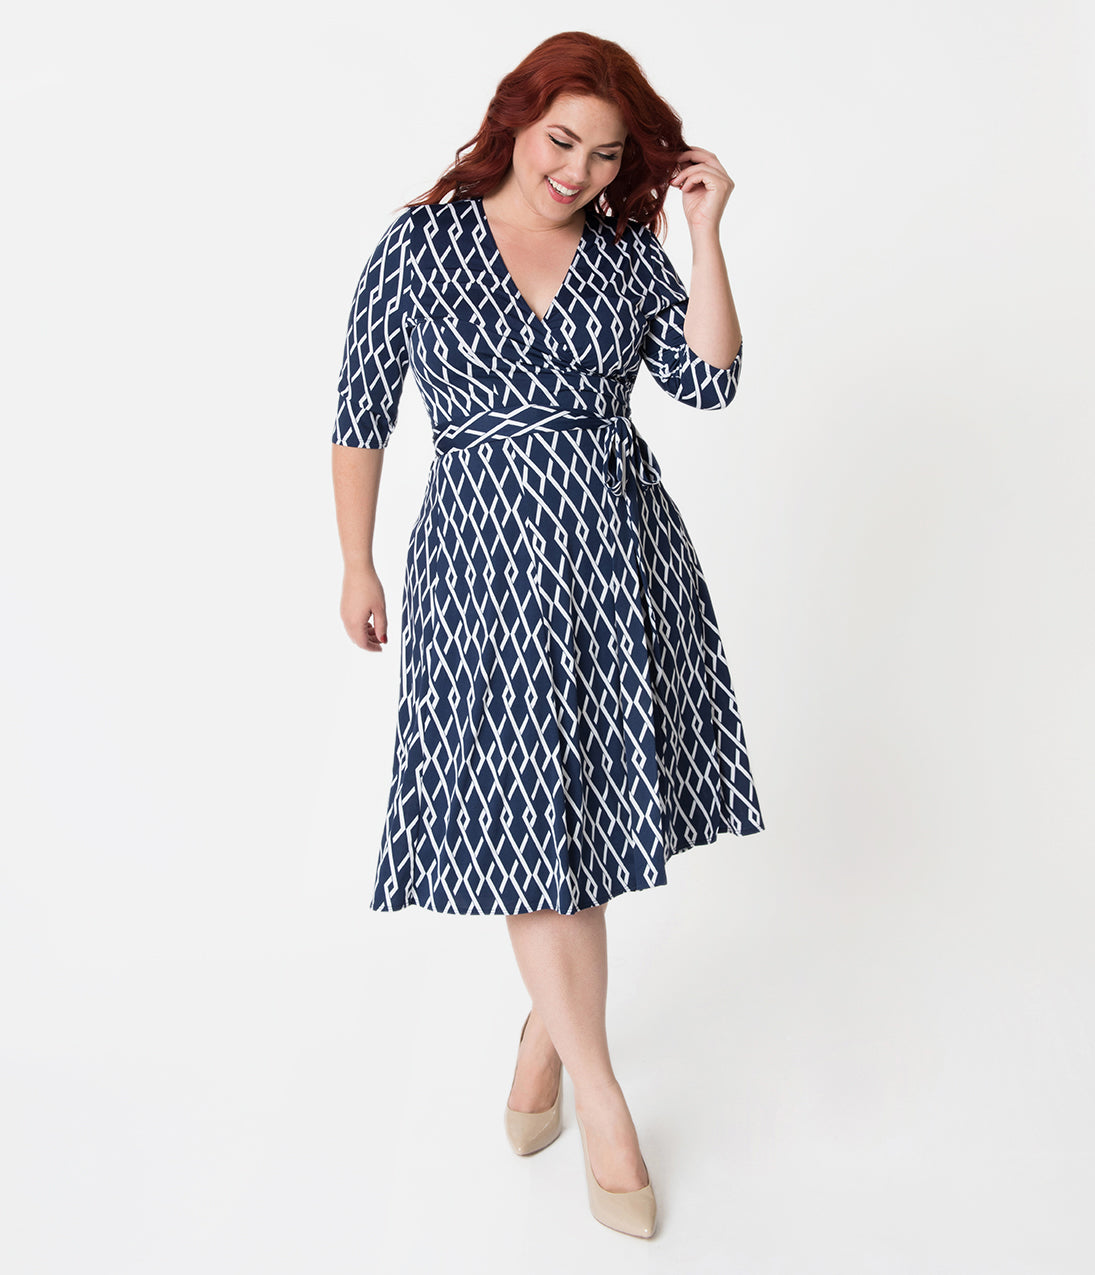 1960s Dresses – A Rainbow of 50 Dresses (Pictures) Retro Style Plus Size Navy Blue  White Pattern Sleeved Essential Wrap Dress $88.00 AT vintagedancer.com